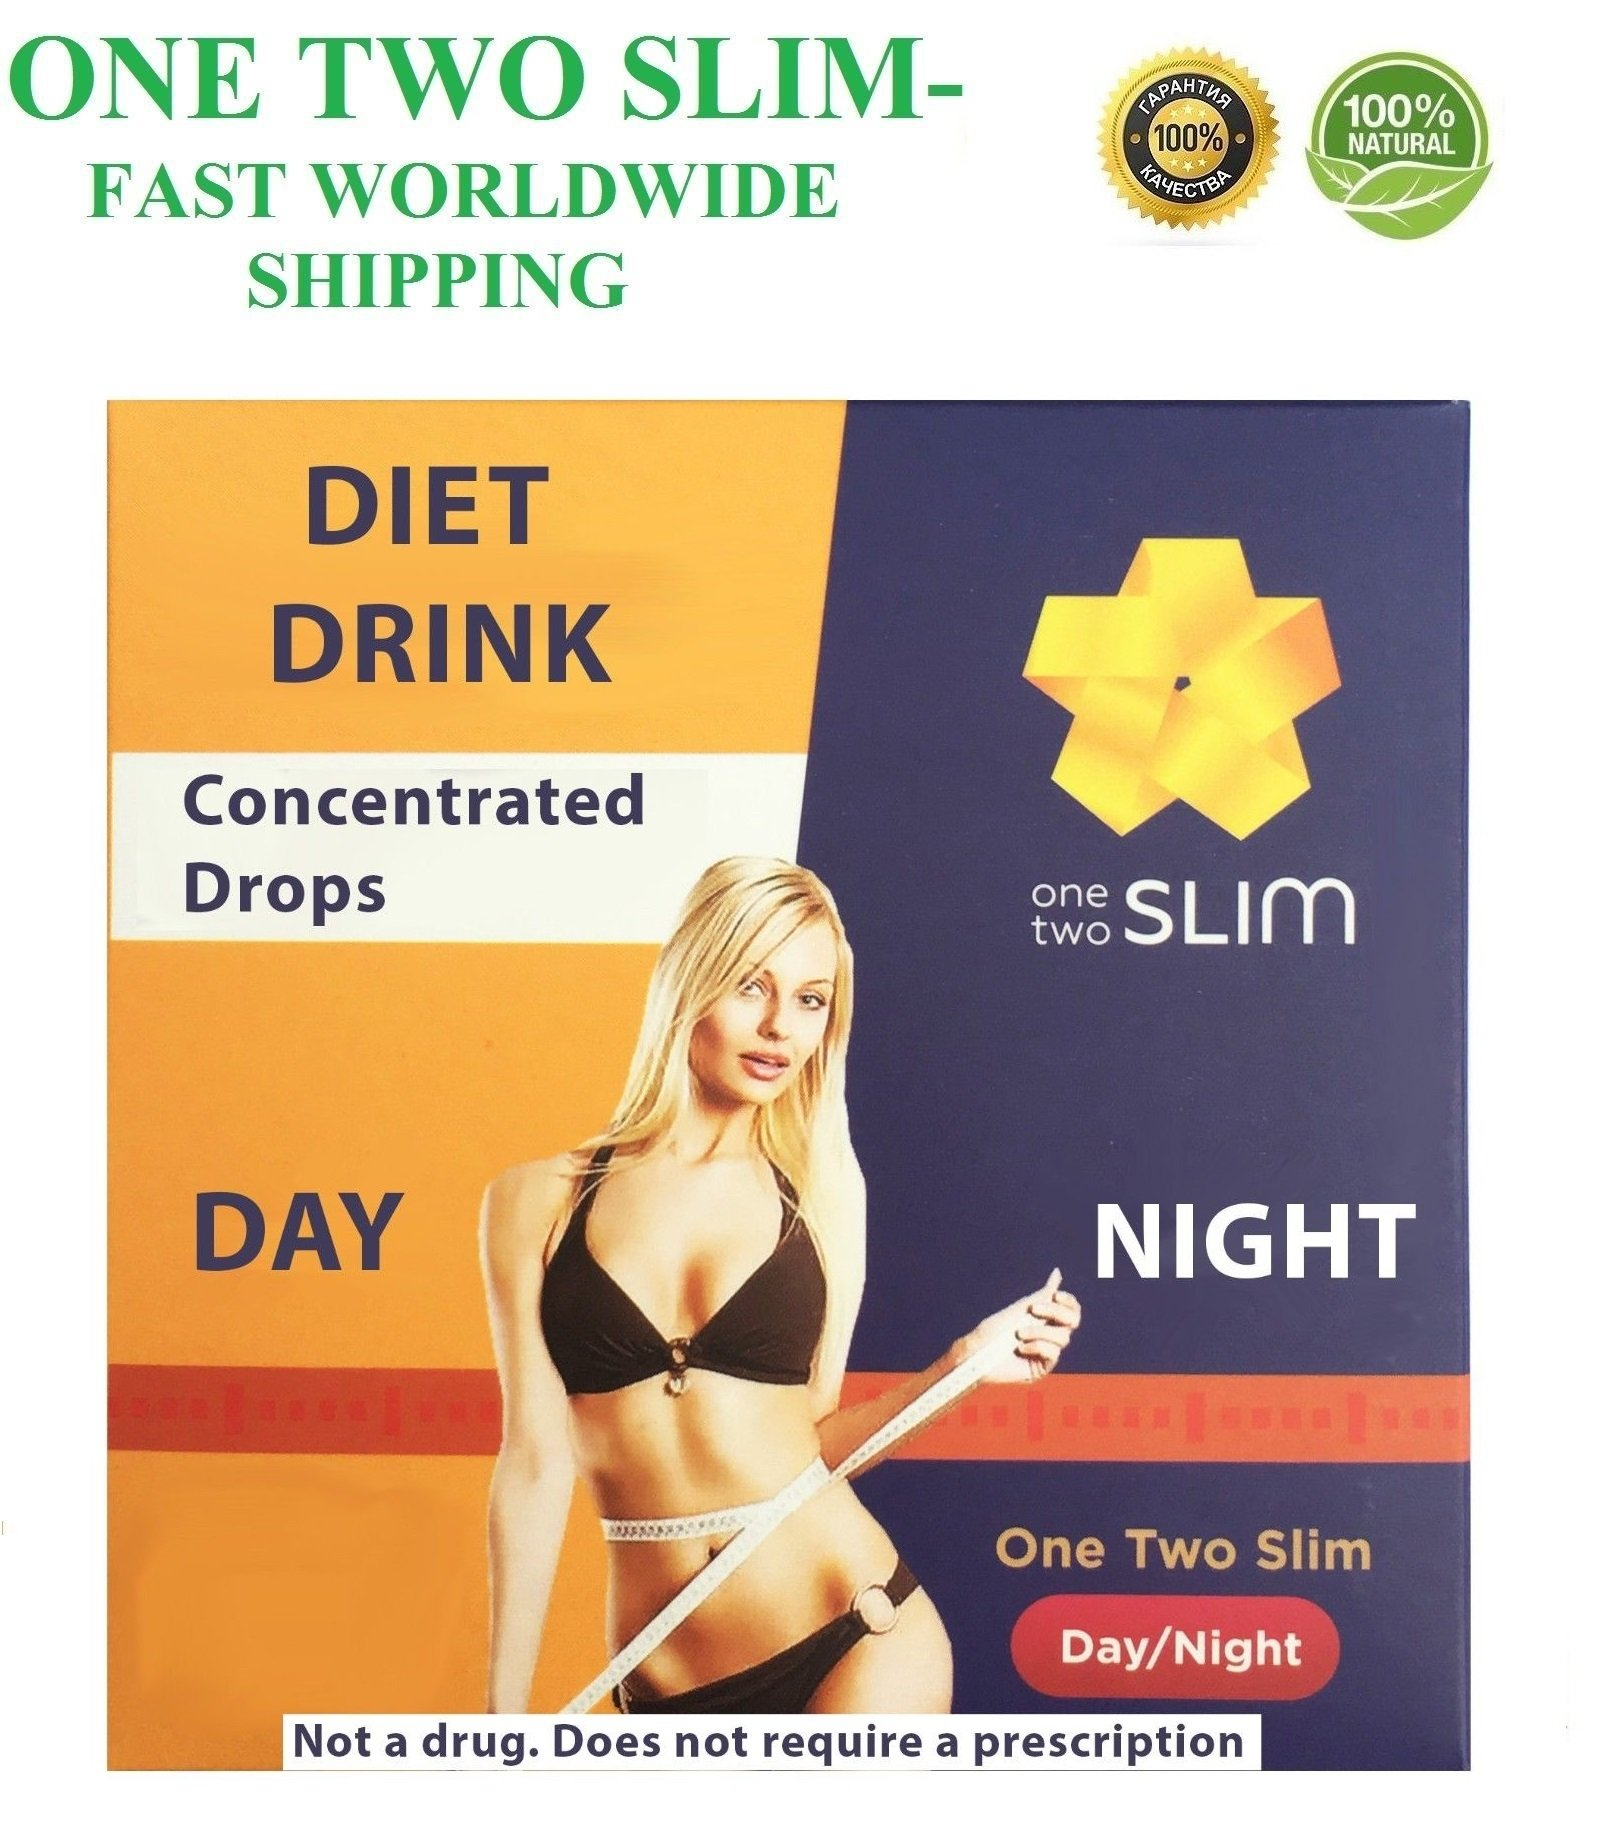 ONE TWO SLIM | ONETWOSLIM | 100% Diet Drink Weight Loss Fat Burner Diet Drops (10)